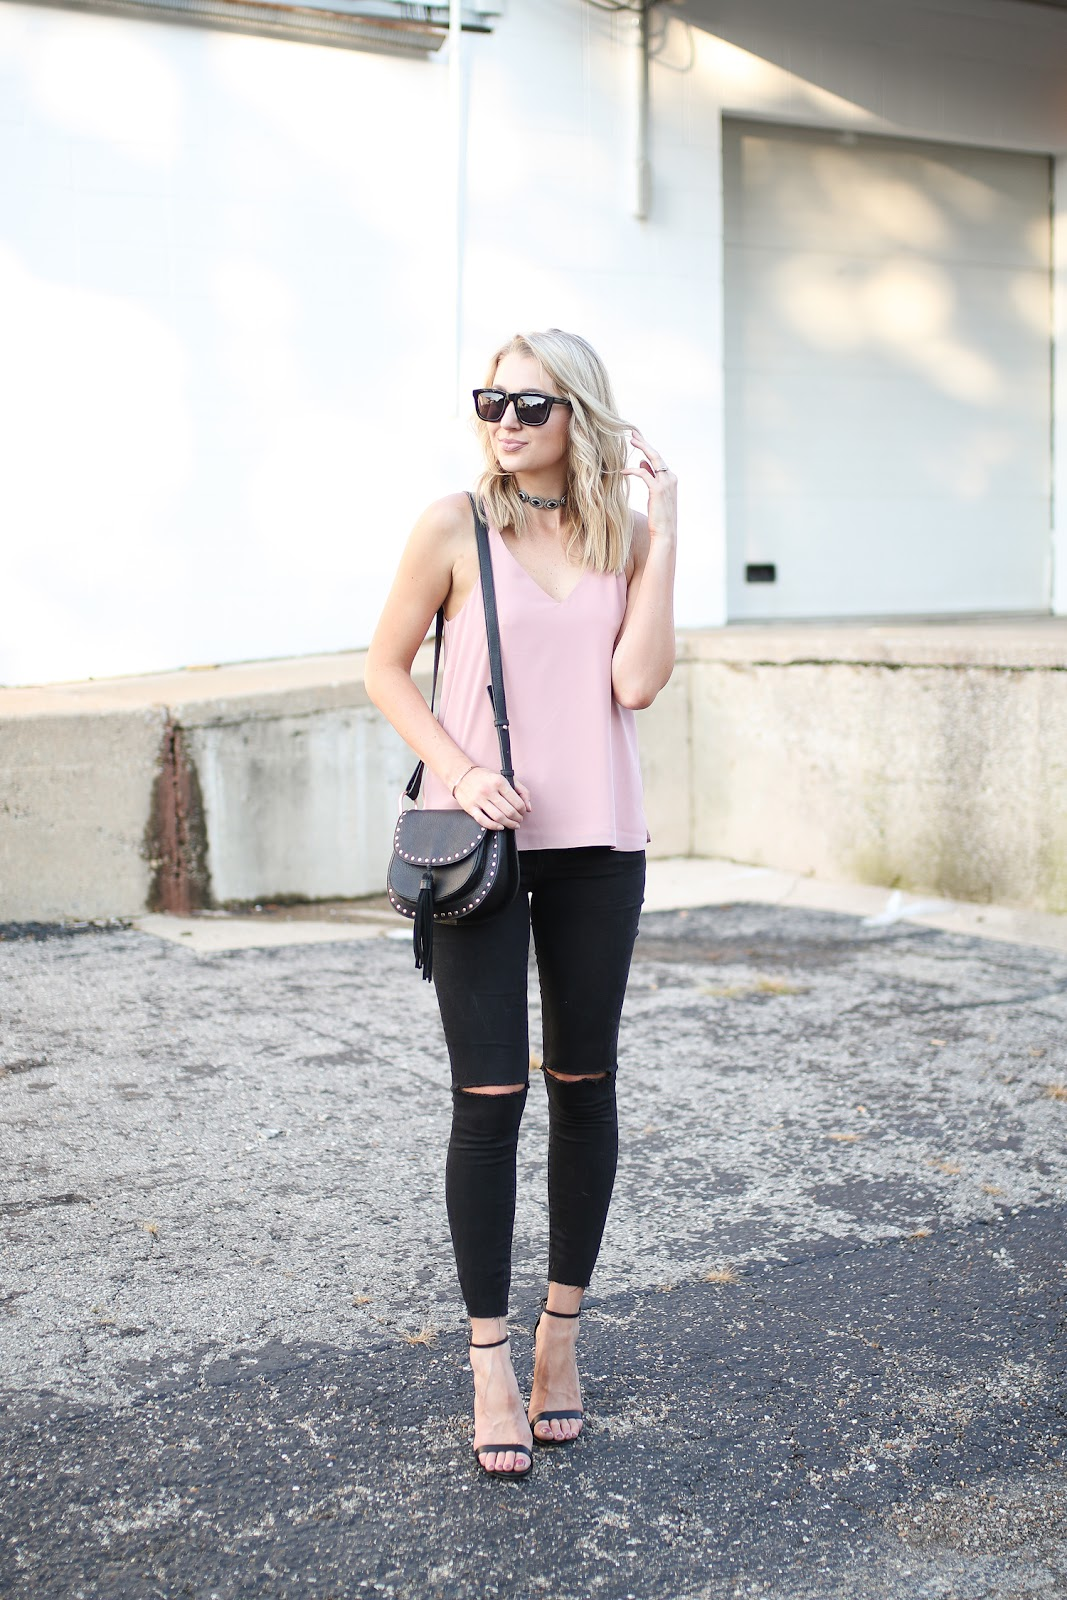 Simple outfit with edgy details